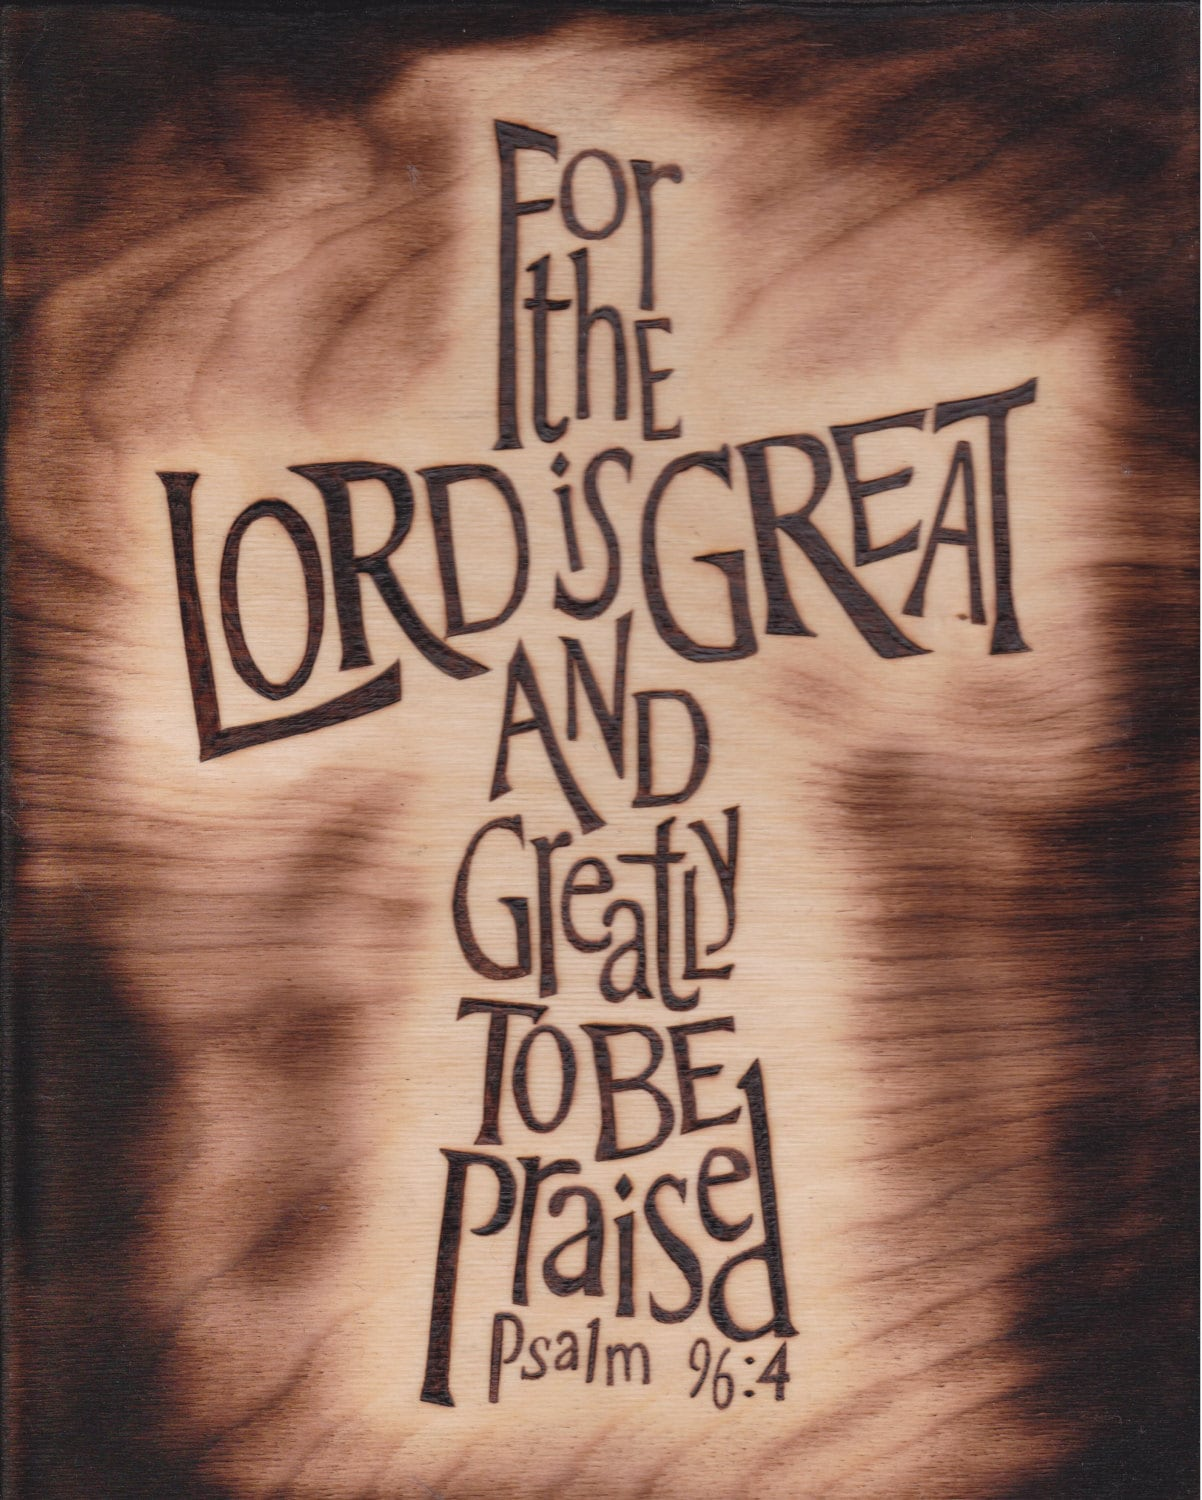 Inspirational Woodburn Pyrography Ps 96 4 Lord Is Great And